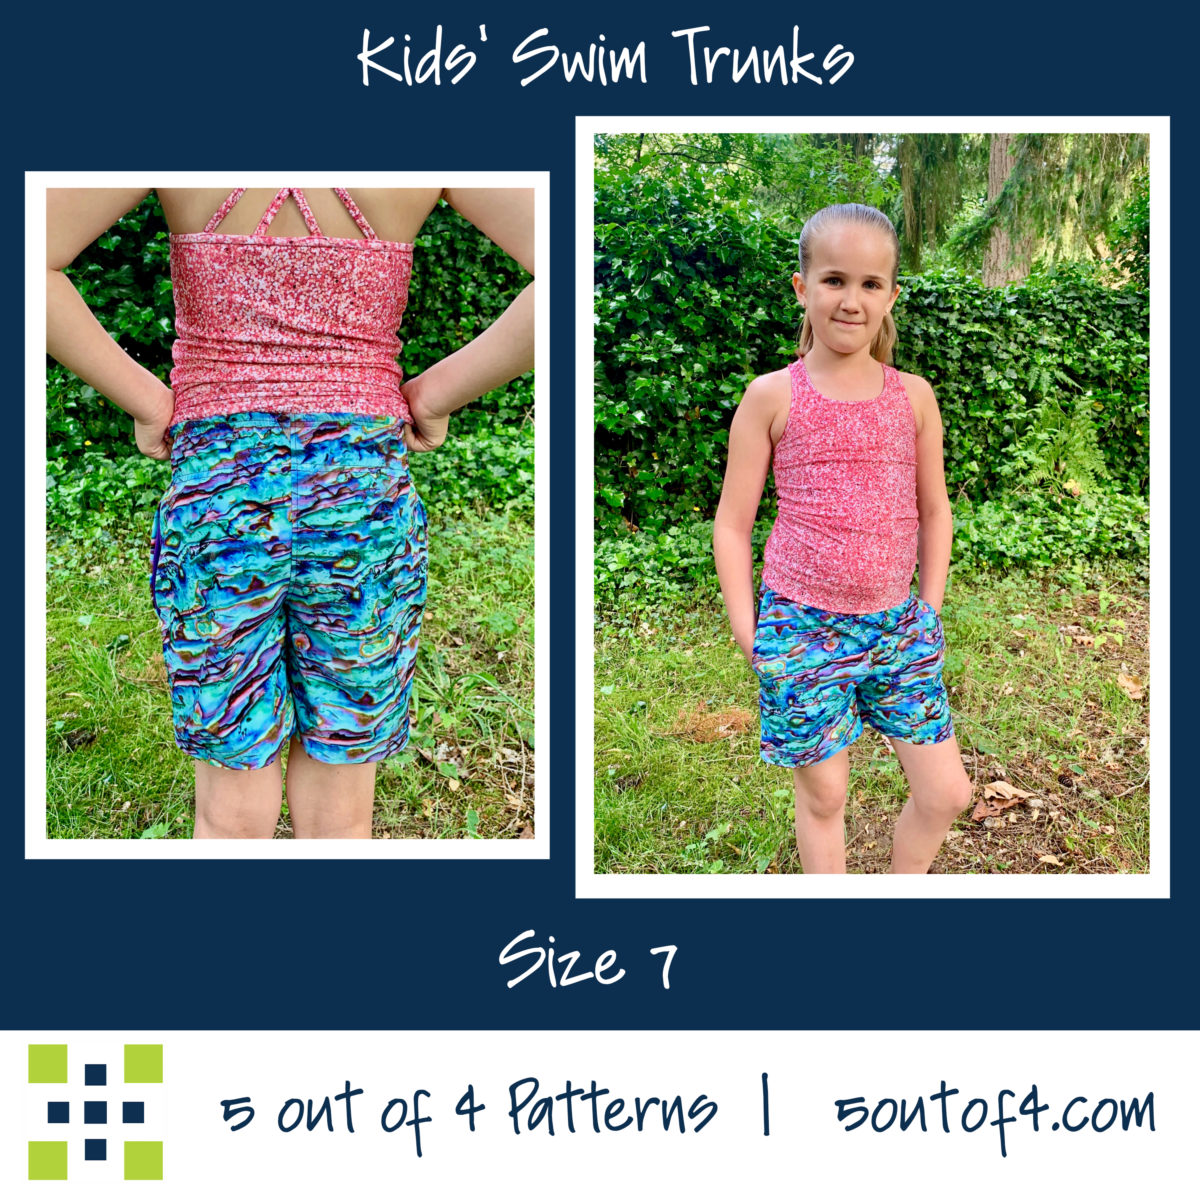 5oo4 kids' swim trunks size 7